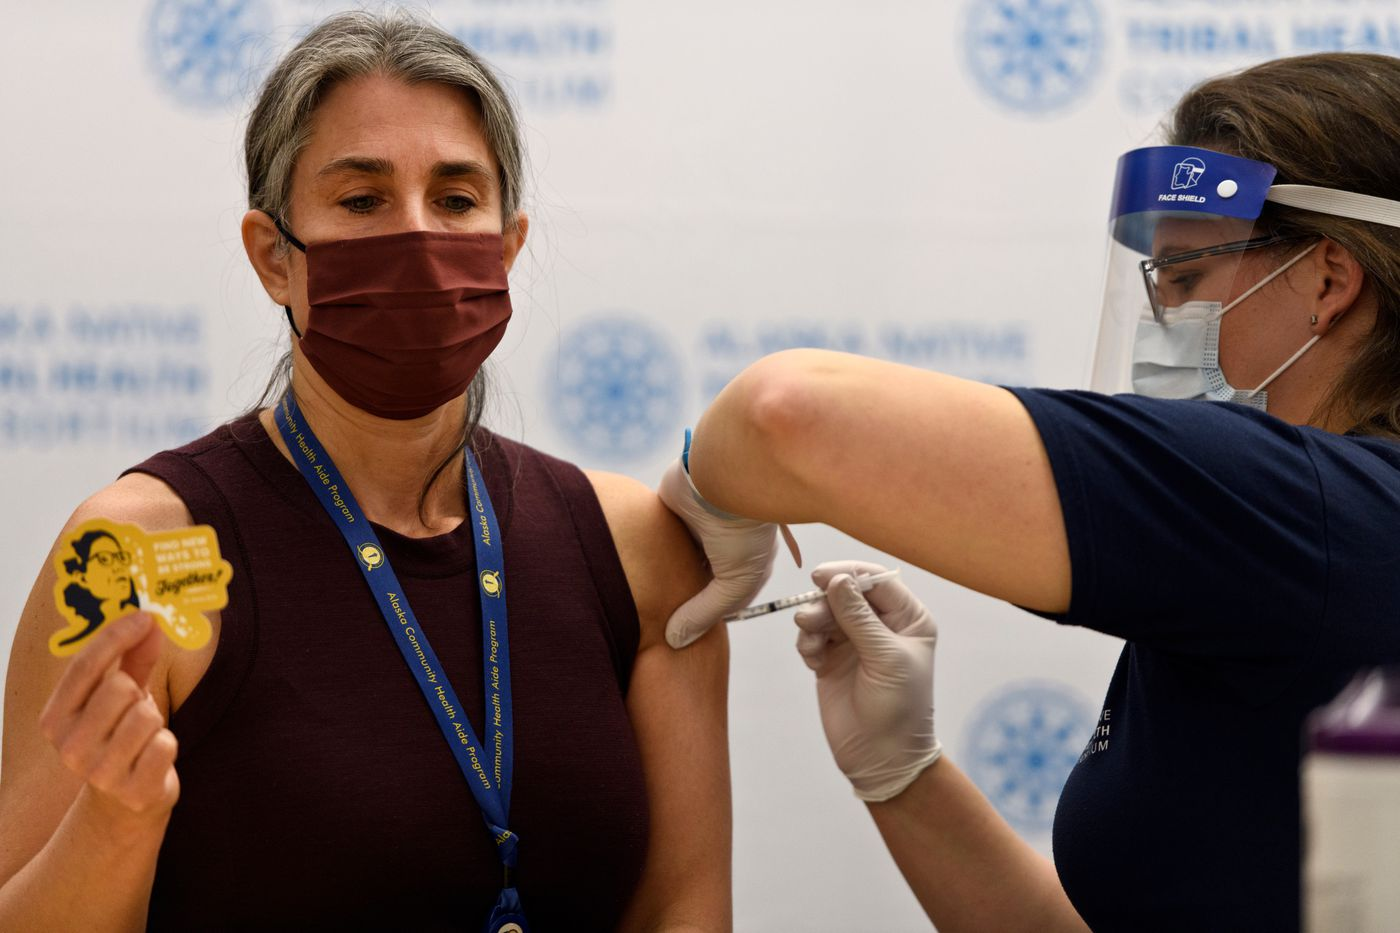 """Dr. Michelle Hensel, a medical director for the Community Health Aide Program, receives her vaccine shot while holding up a sticker with Alaska chief medical officer Anne Zink's image on it. The sticker says """"Find new ways to be strong together."""" Health care workers began receiving vaccination for COVID-19 at Alaska Native Medical Center in Anchorage on December 15, 2020. (Marc Lester / ADN)"""